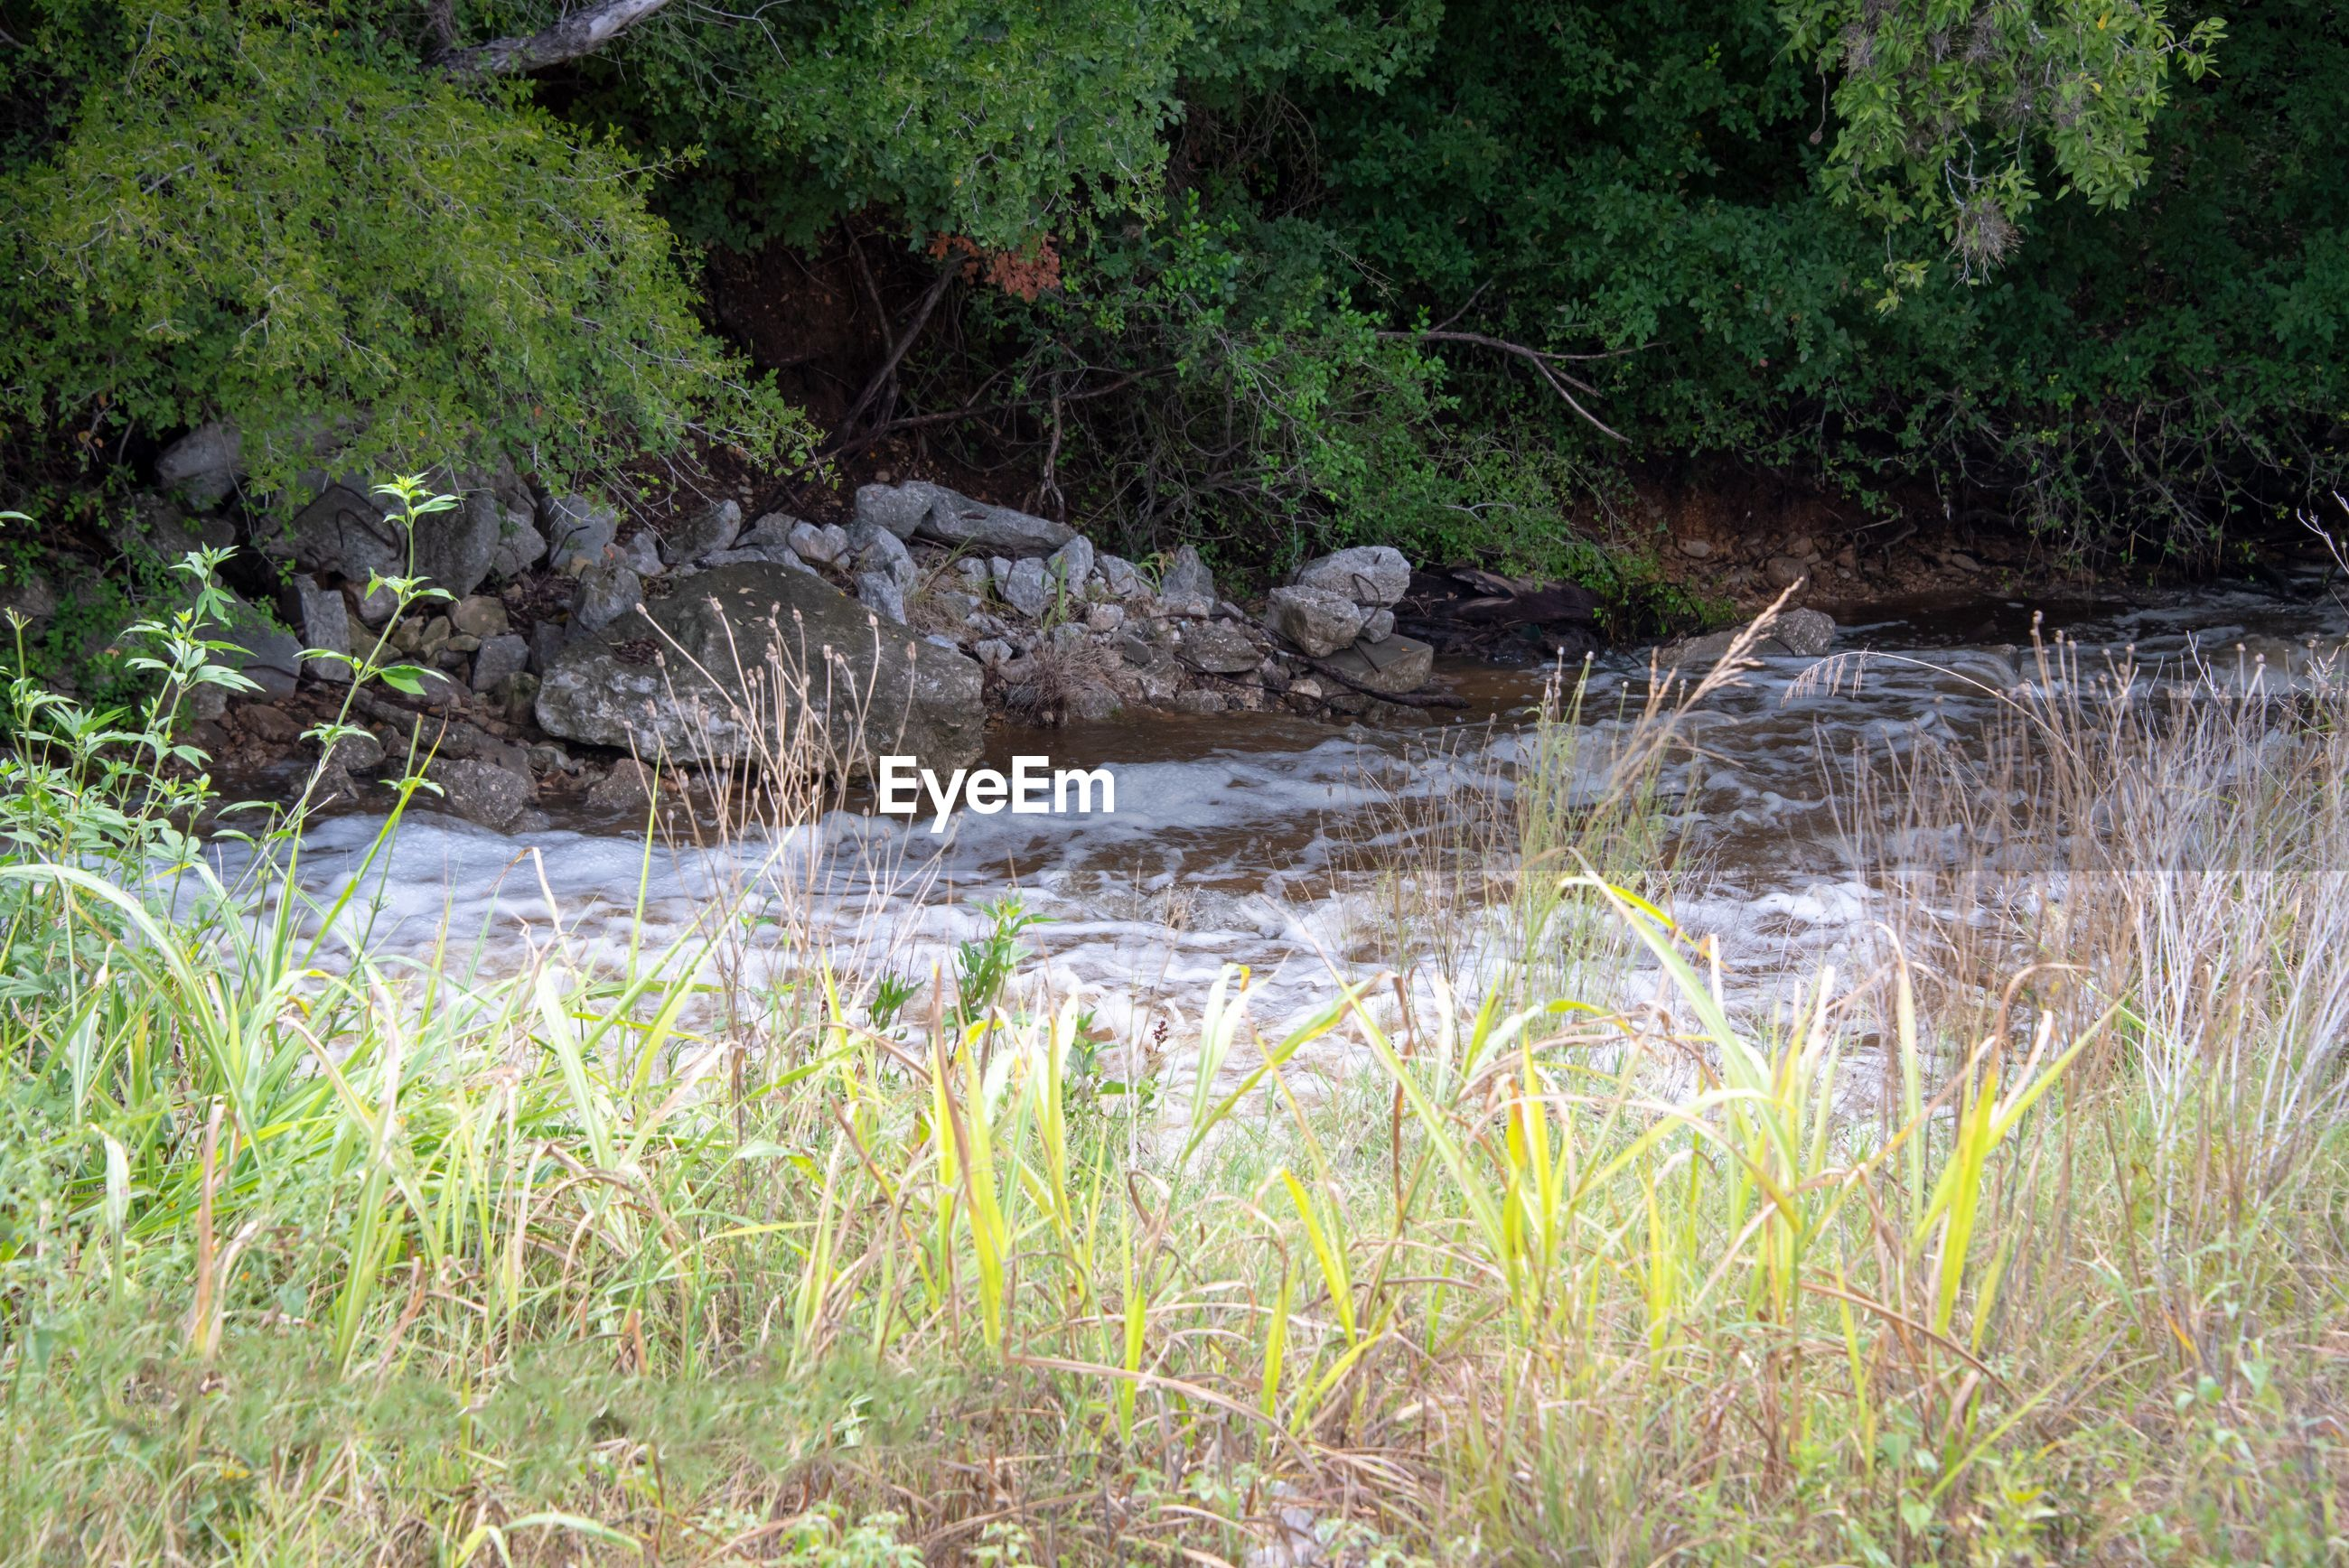 GRASS GROWING IN RIVER